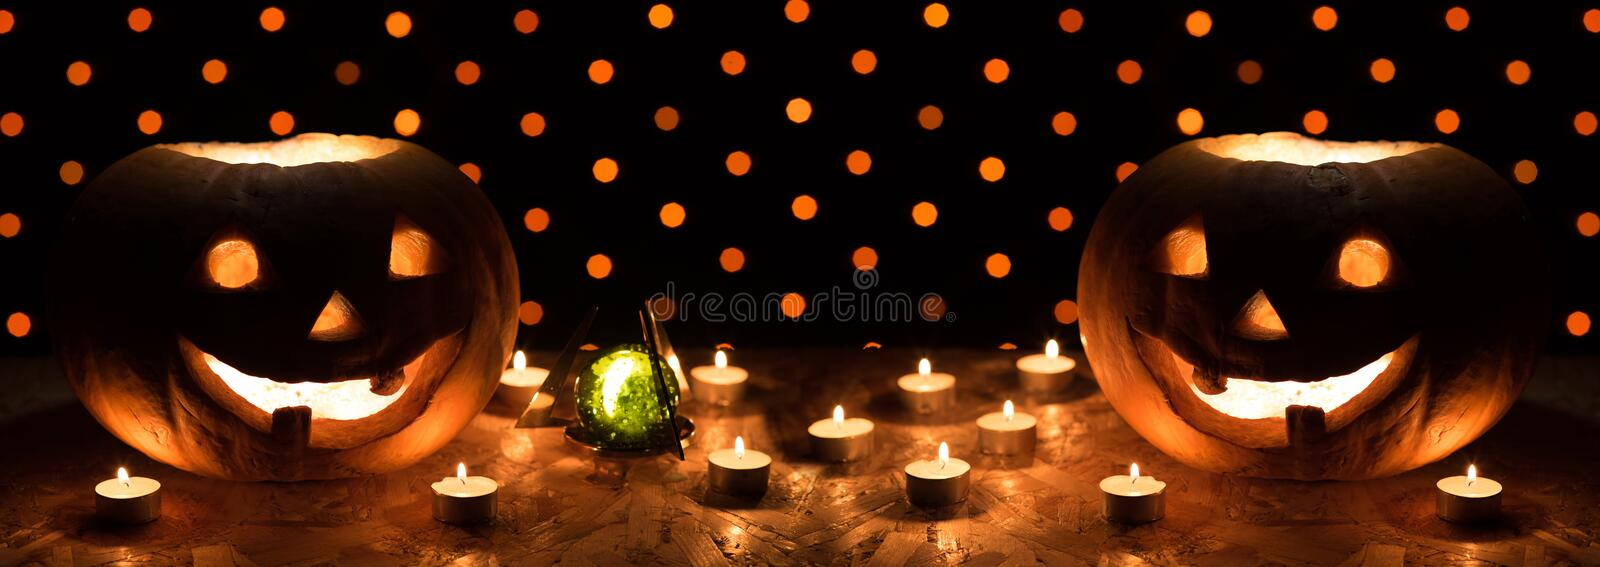 Orange pumpkins as a head with carved eyes and a smile with candles on a black background with a garland to the Halloween party royalty free stock images